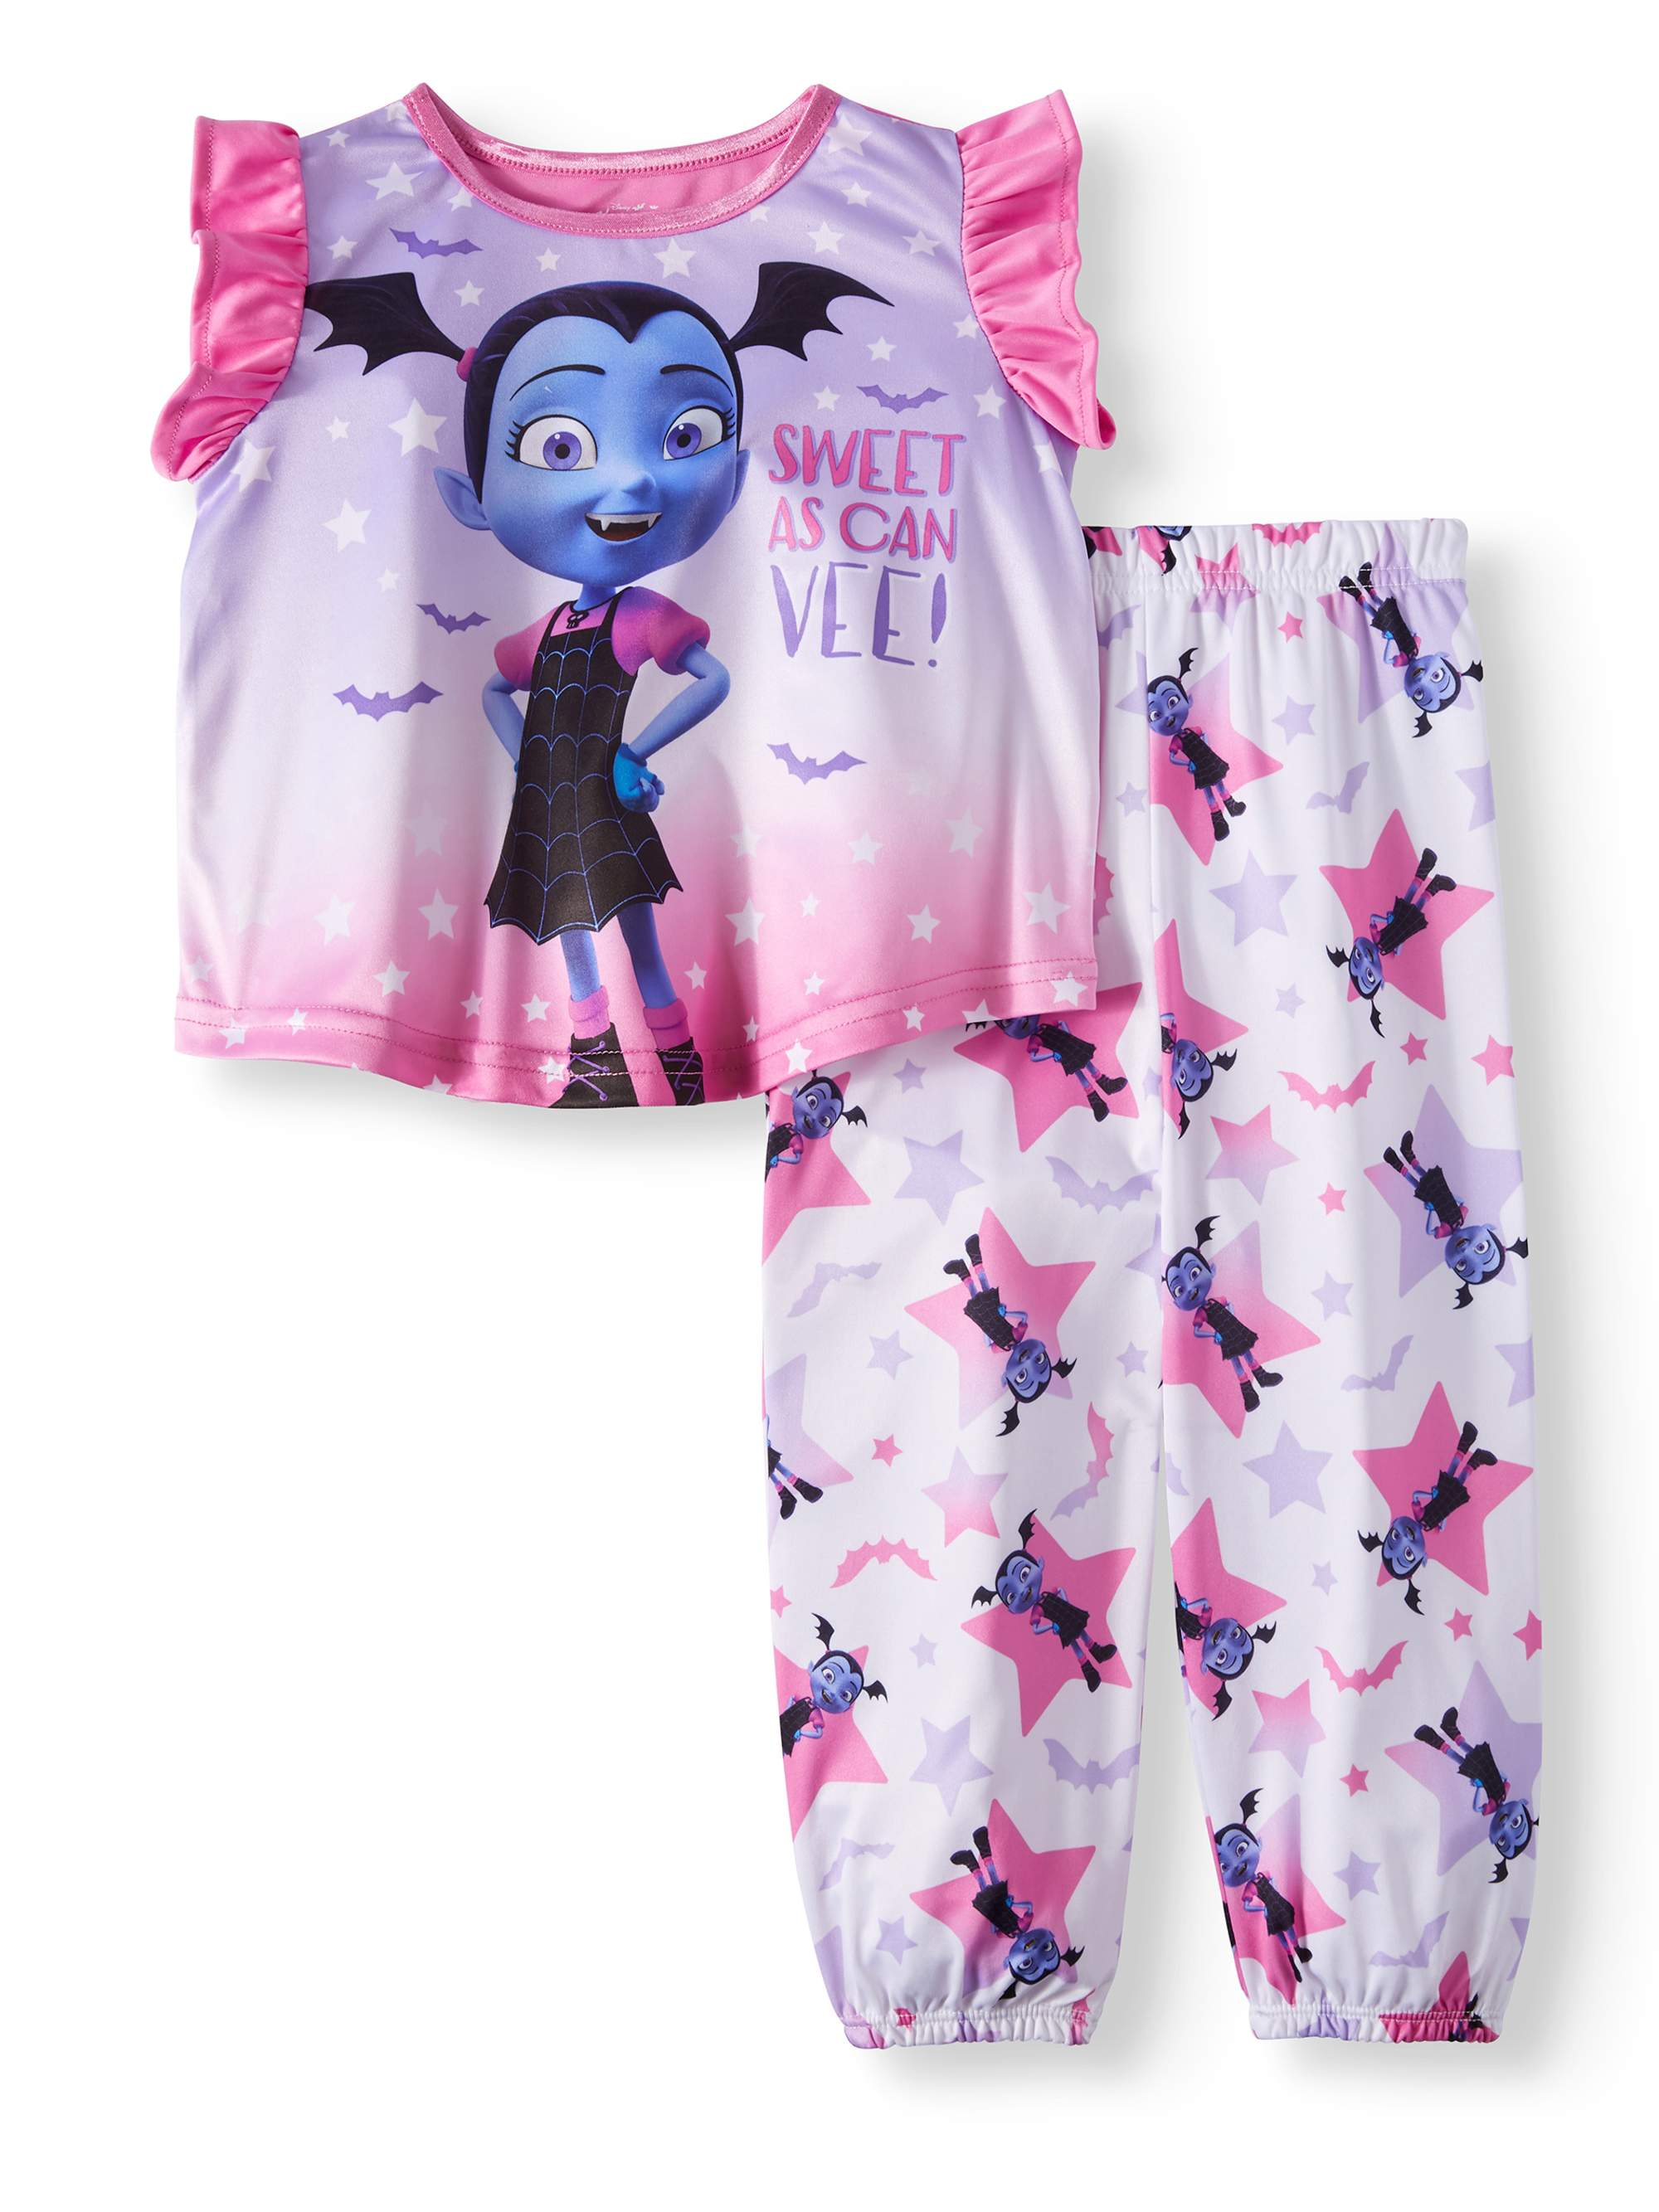 Toddler Girls' Vampirina Short Sleeve Top and Pants, 2-Piece Pajama Set